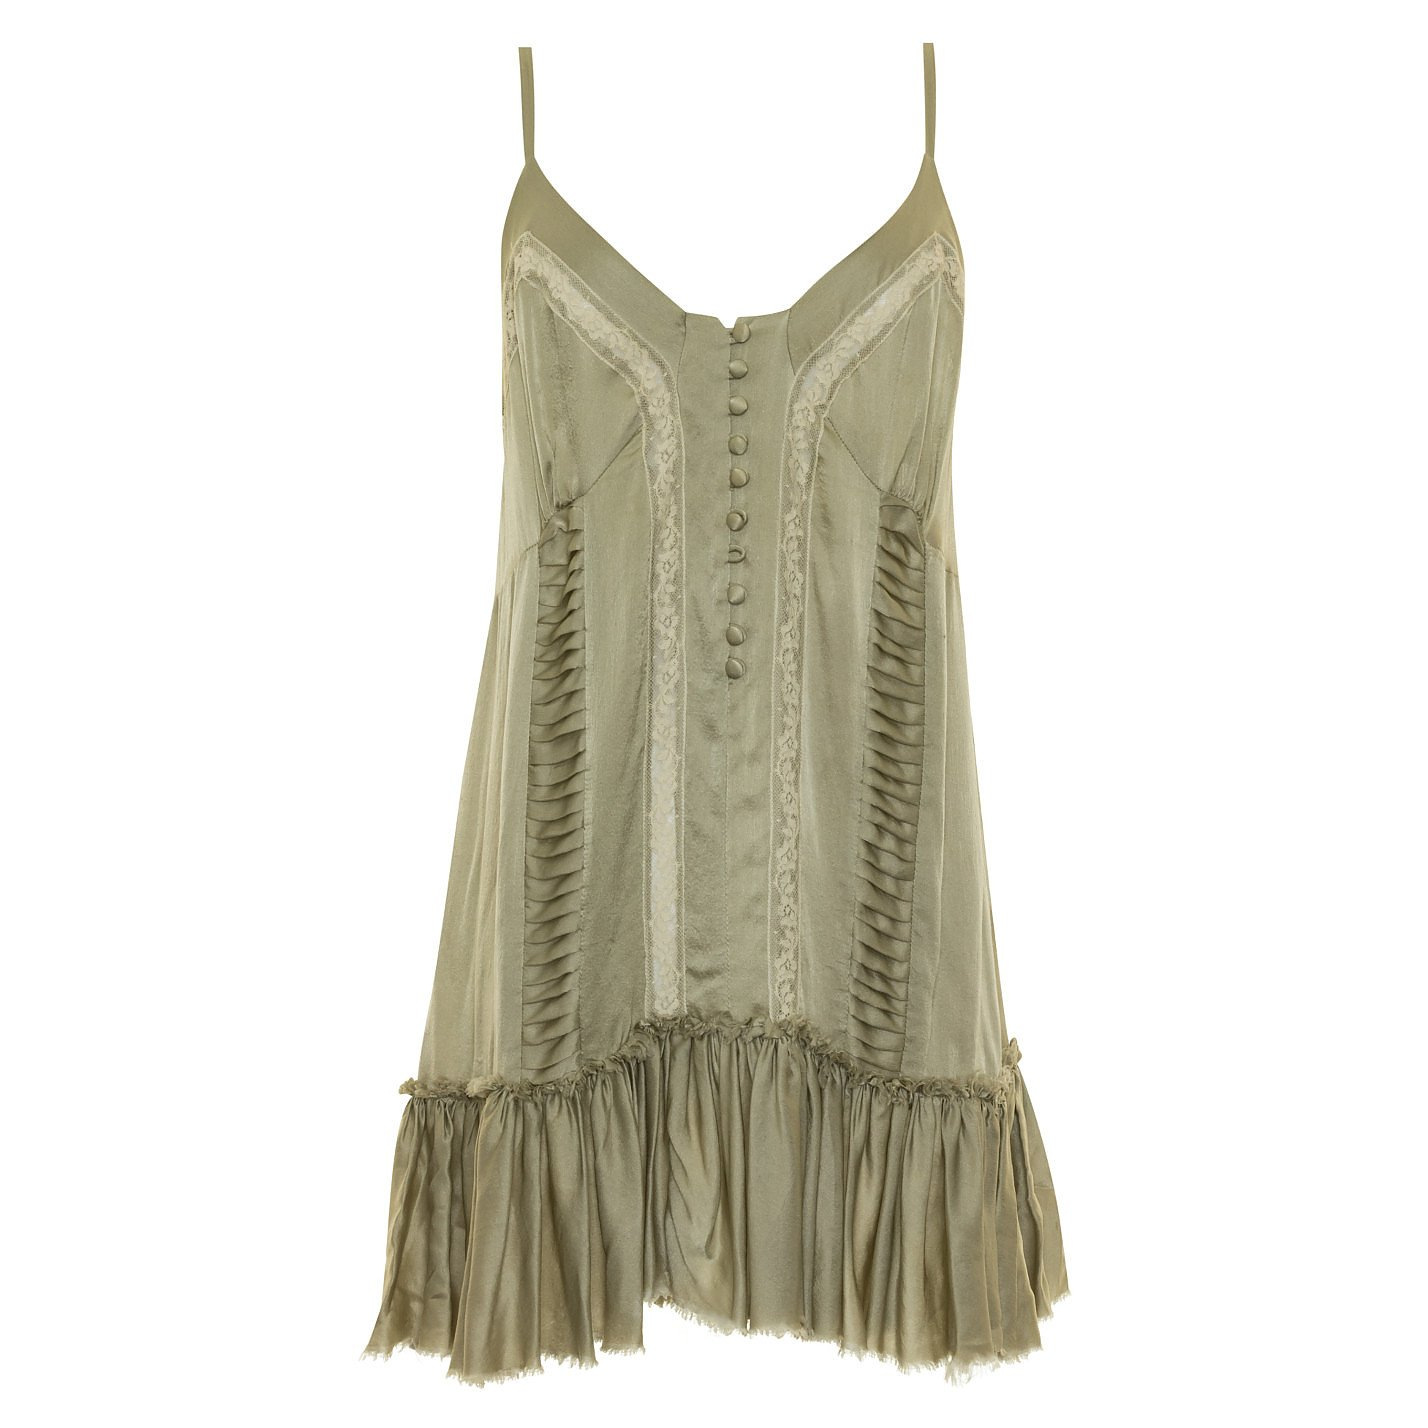 Maje Lace-Trimmed Camisole